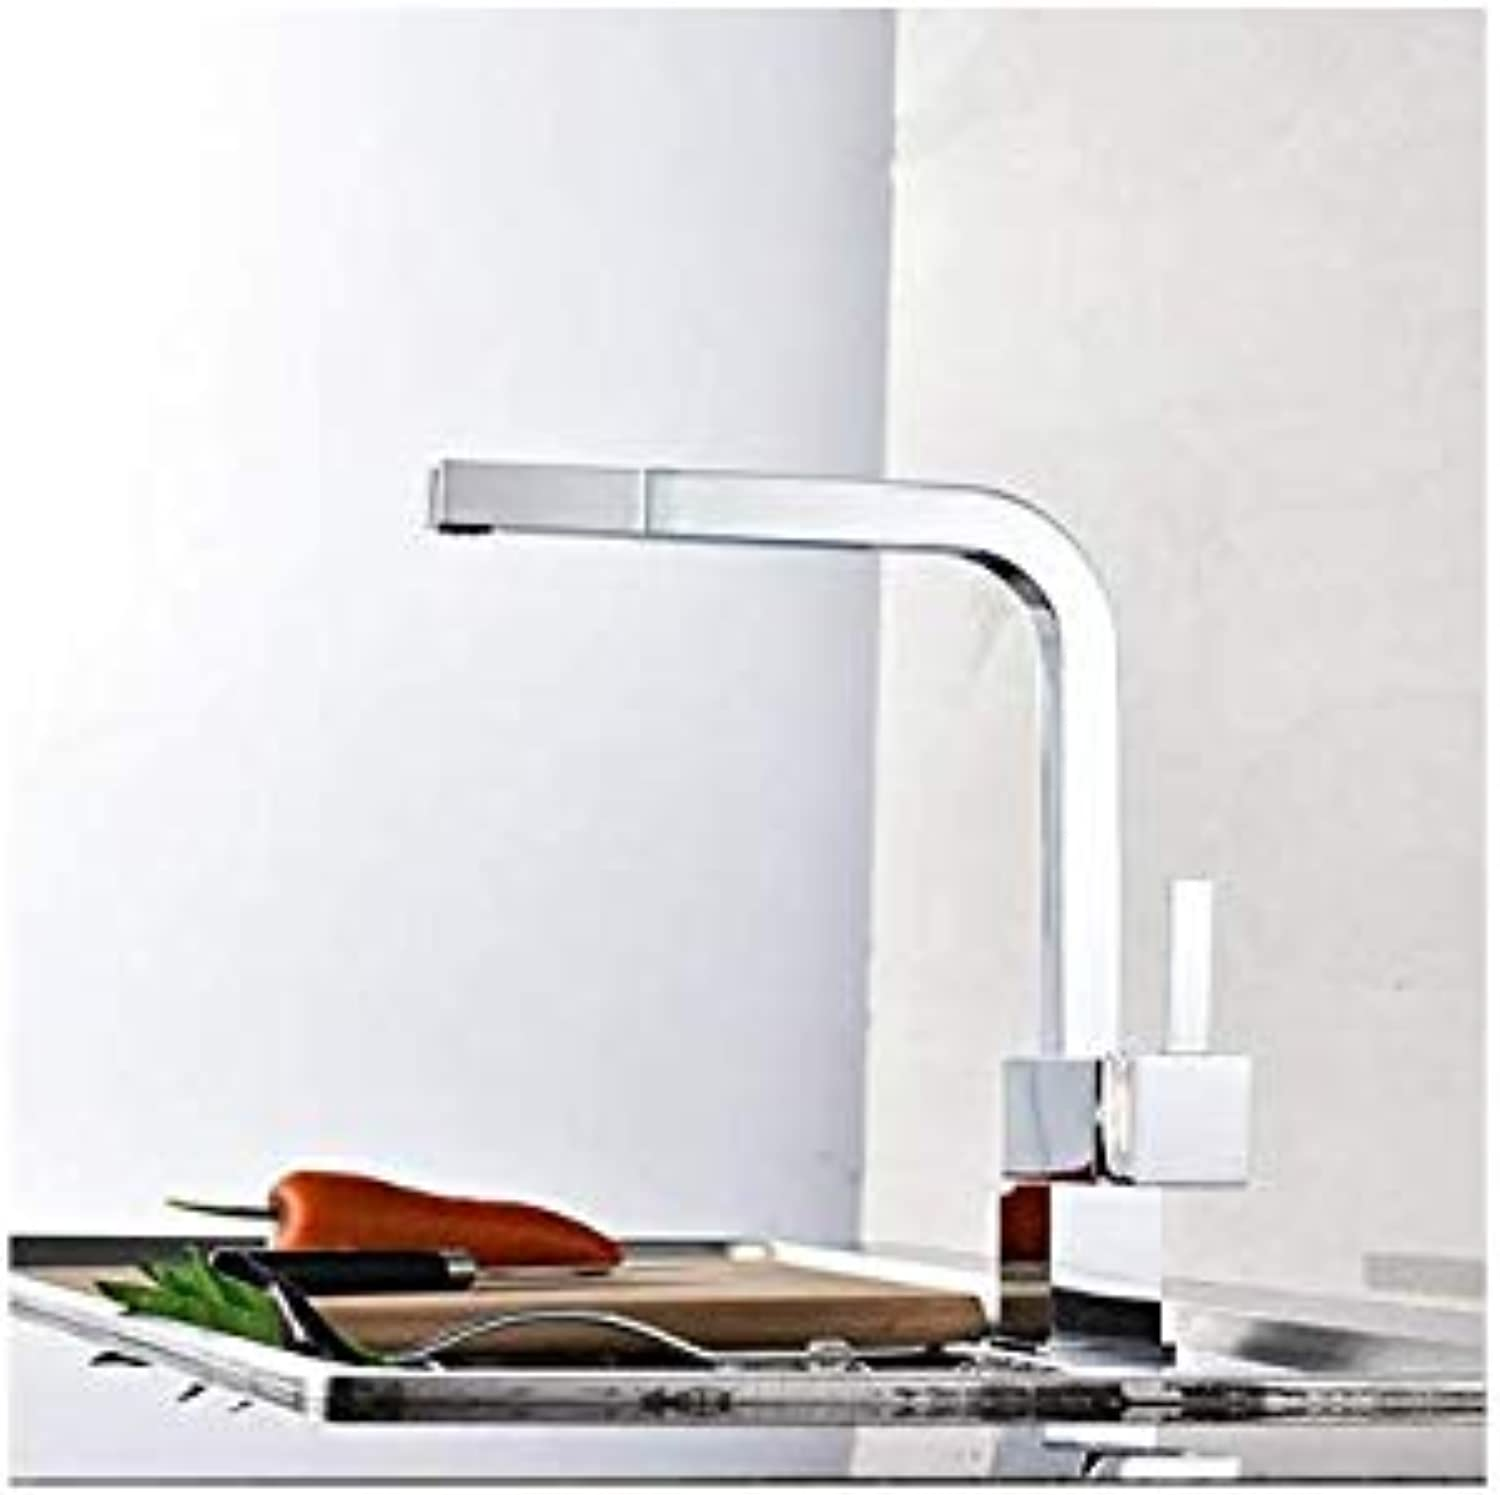 Water Taptaps Faucet Kitchen Sink Dish Basin Copper Pull Hot and Cold Dish Kitchen Faucet redatable Sink Faucet Mixing Valve Faucet